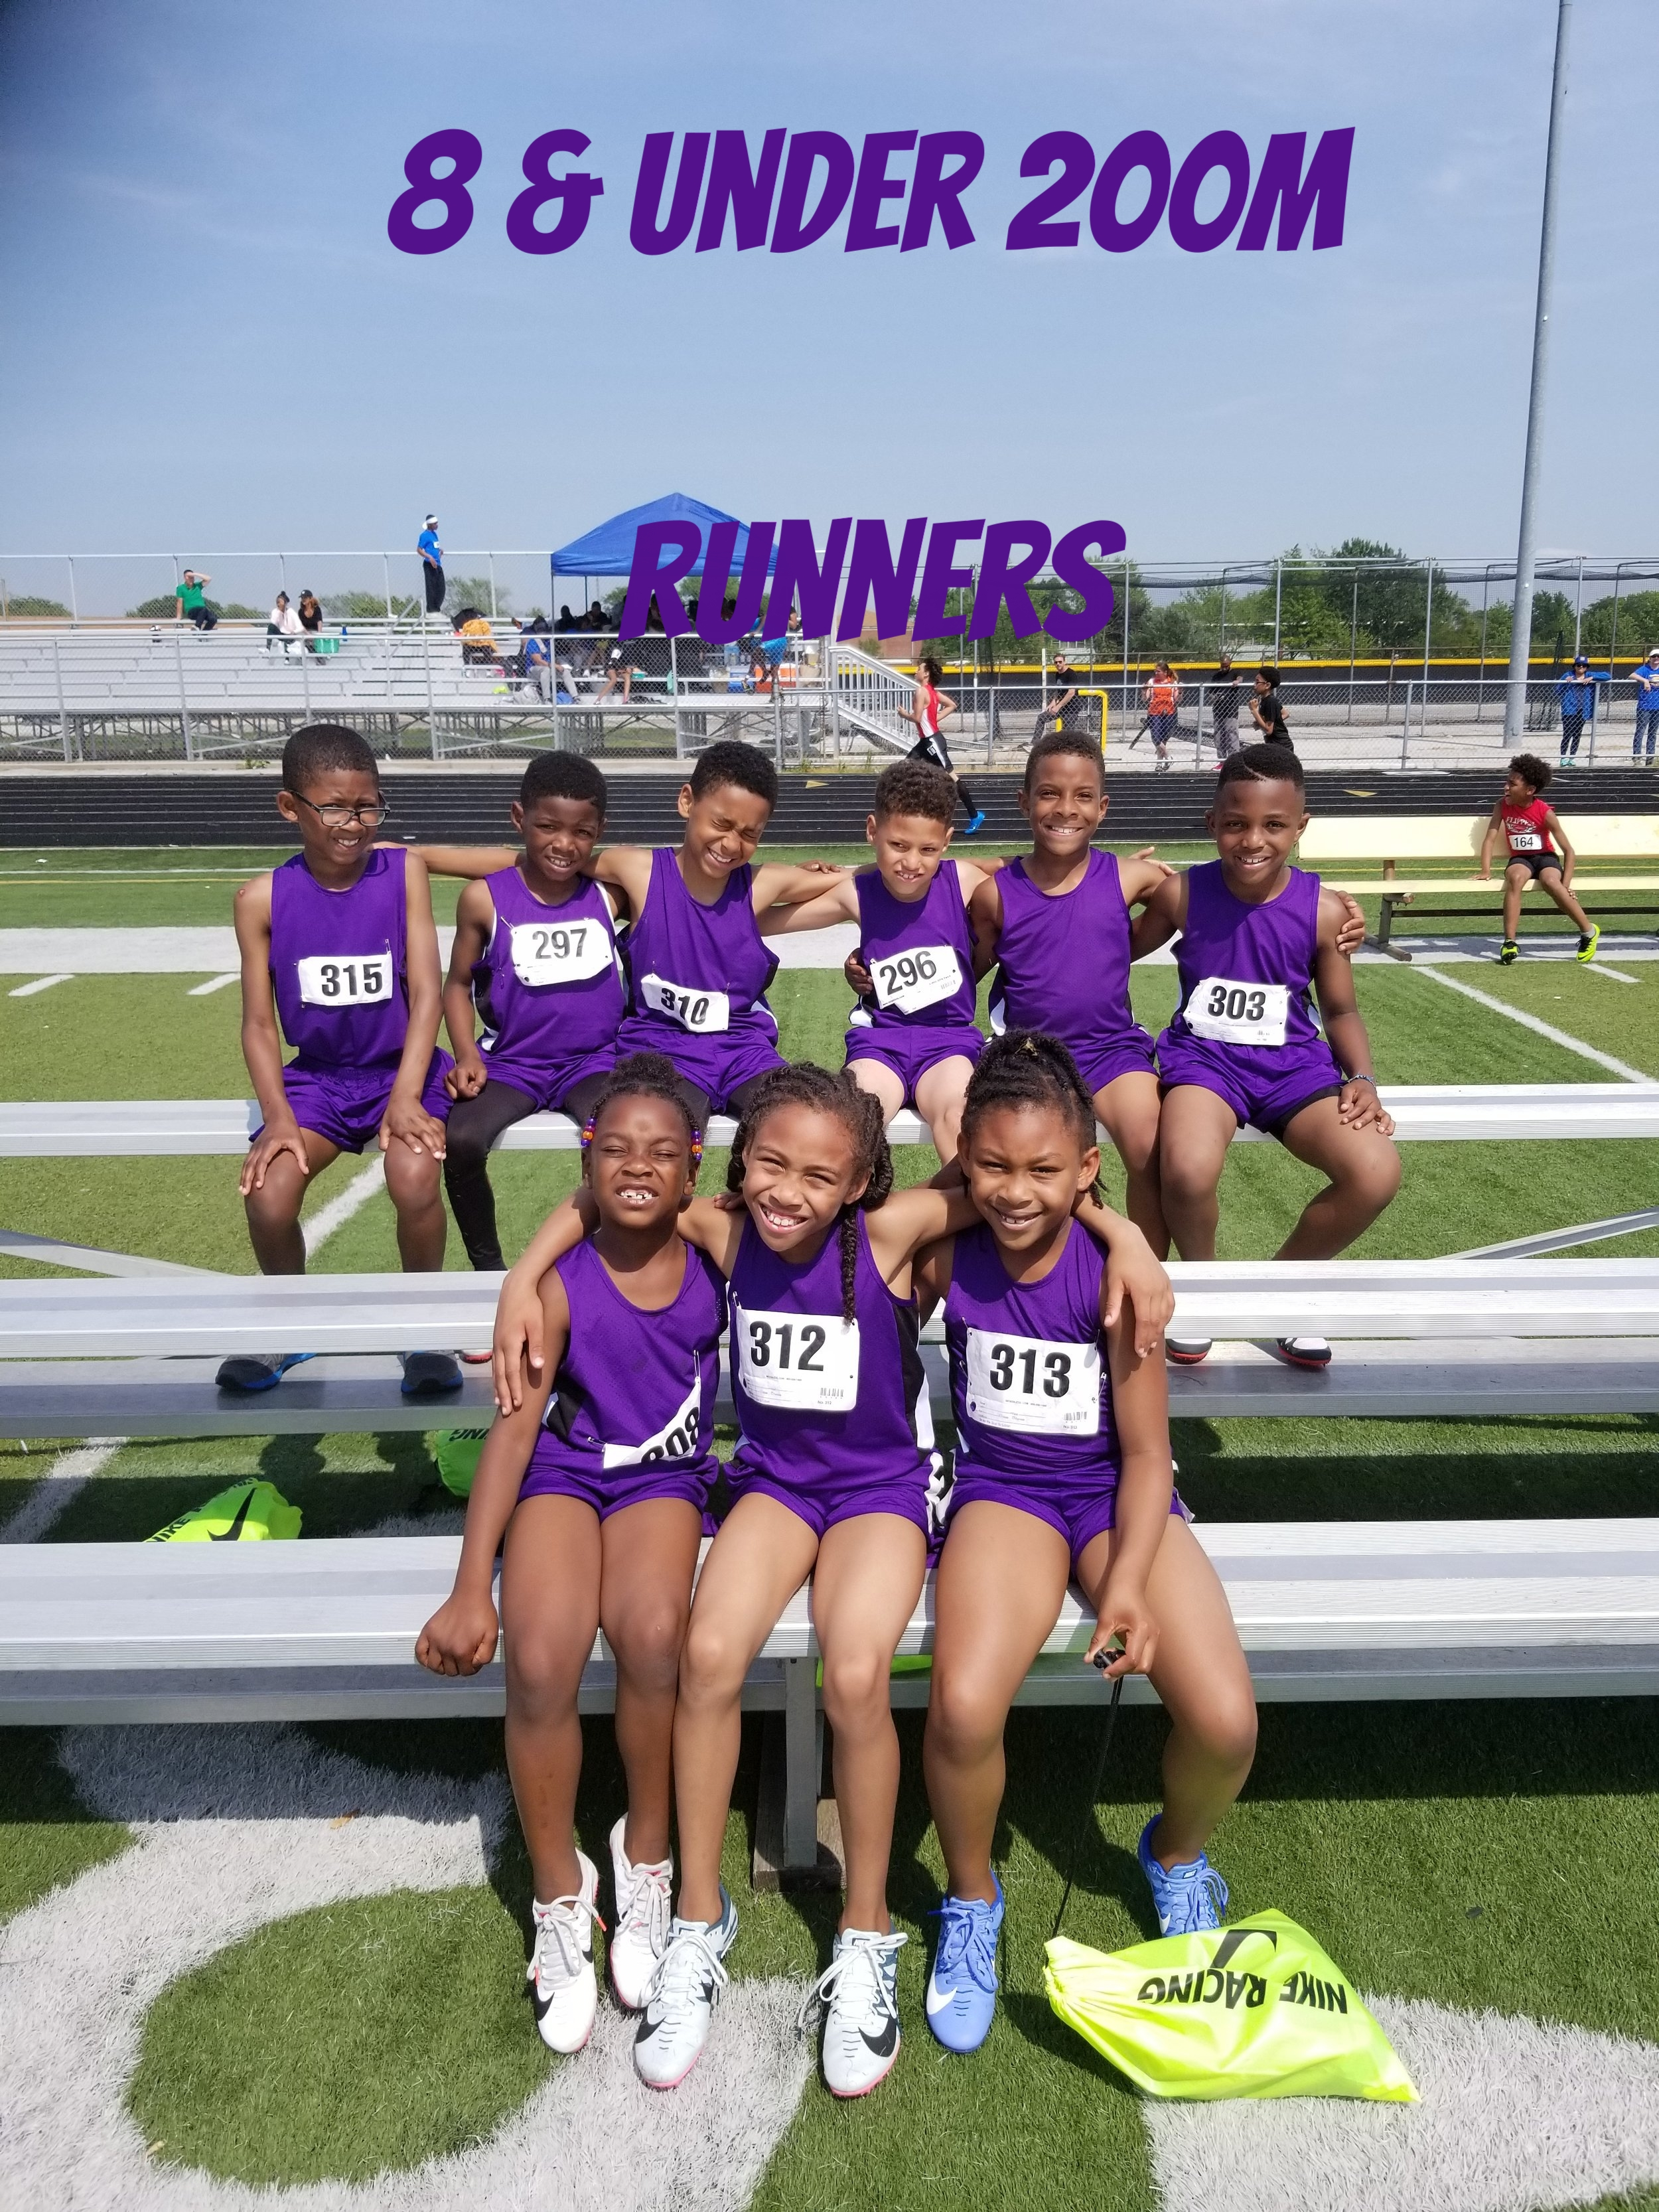 200m Runners 8 & under age group